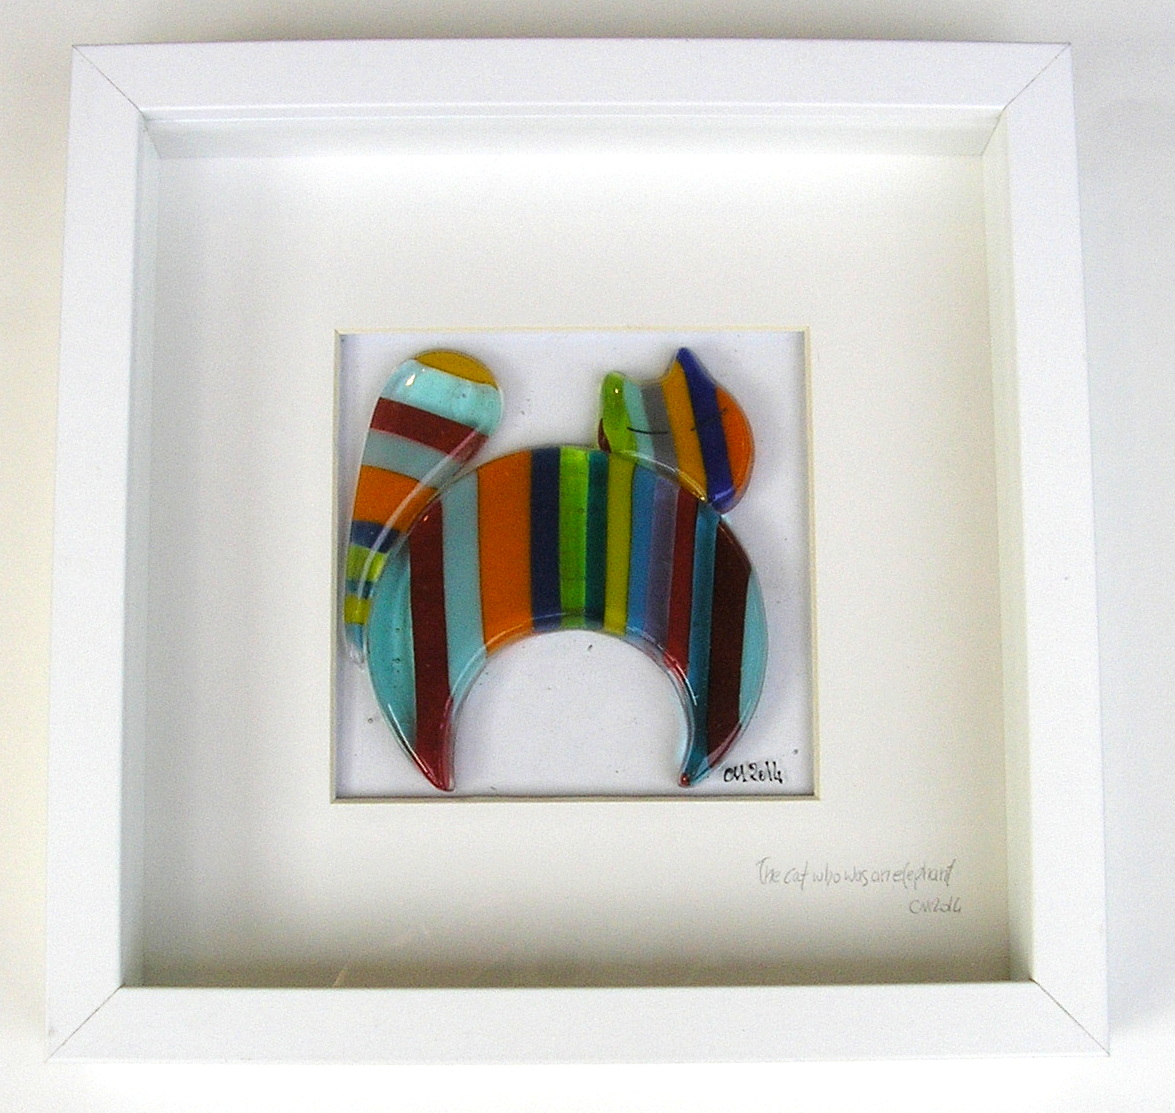 Small Framed Panels - Inlight - Contemporary Fused Glass by Chantal ...